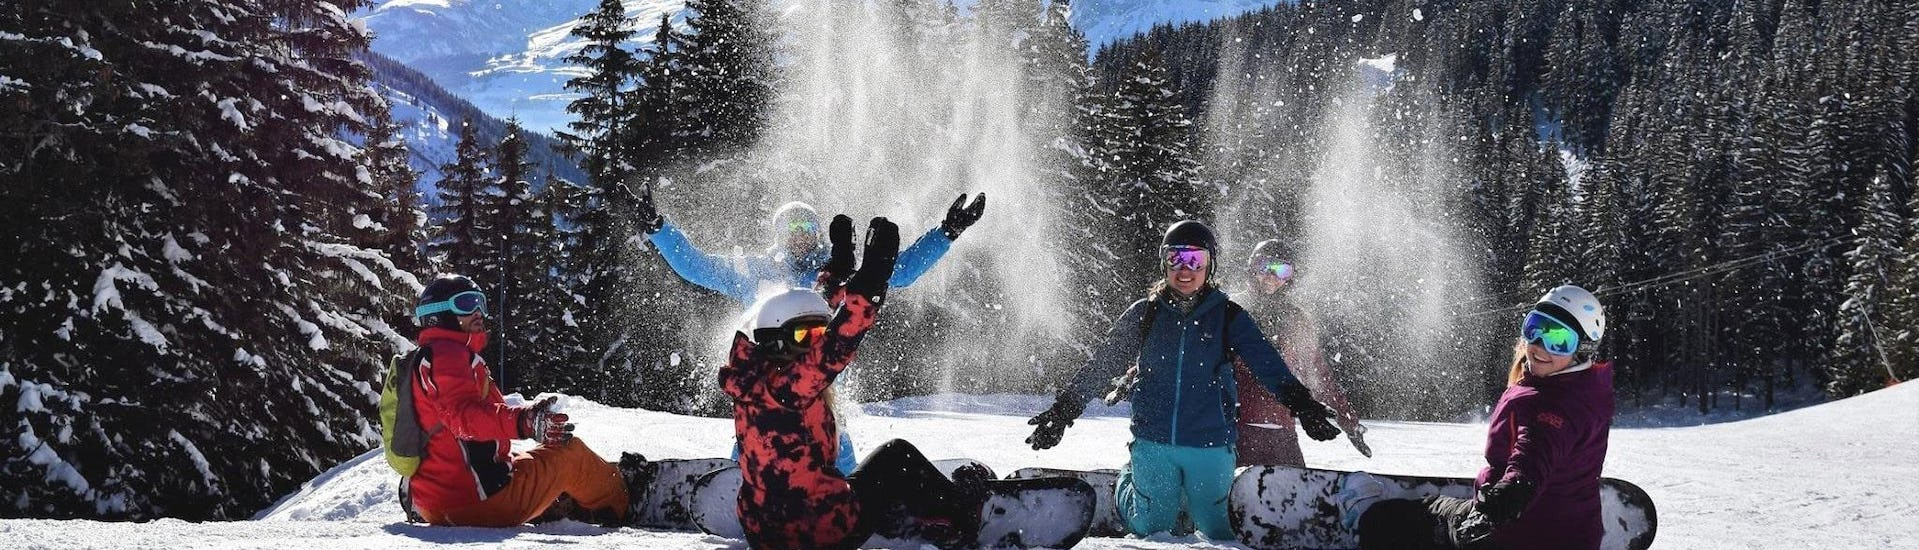 snowboarding-lessons-for-kids-and-adults-february-holiday-ecole-ski-360-avoriaz-hero